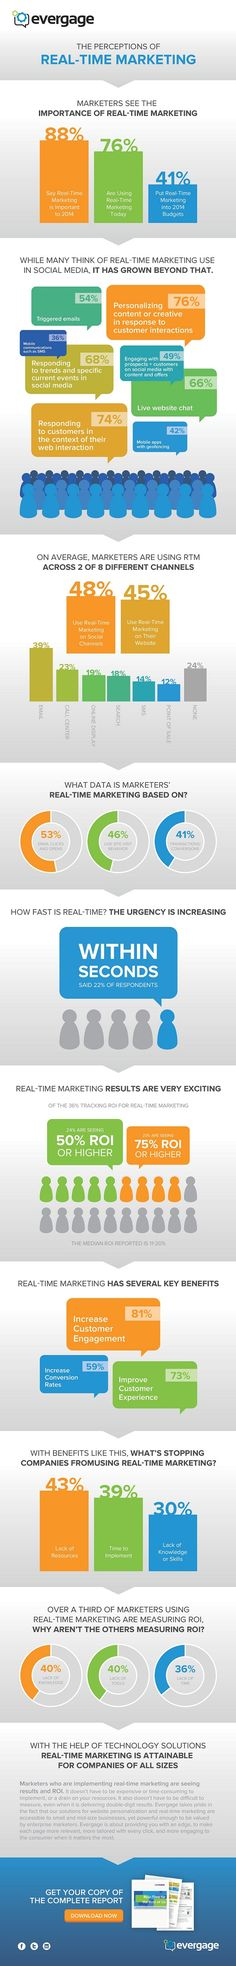 Marketing Strategy - Marketers' Perceptions of Real-Time Marketing [Infographic] : MarketingProfs Article